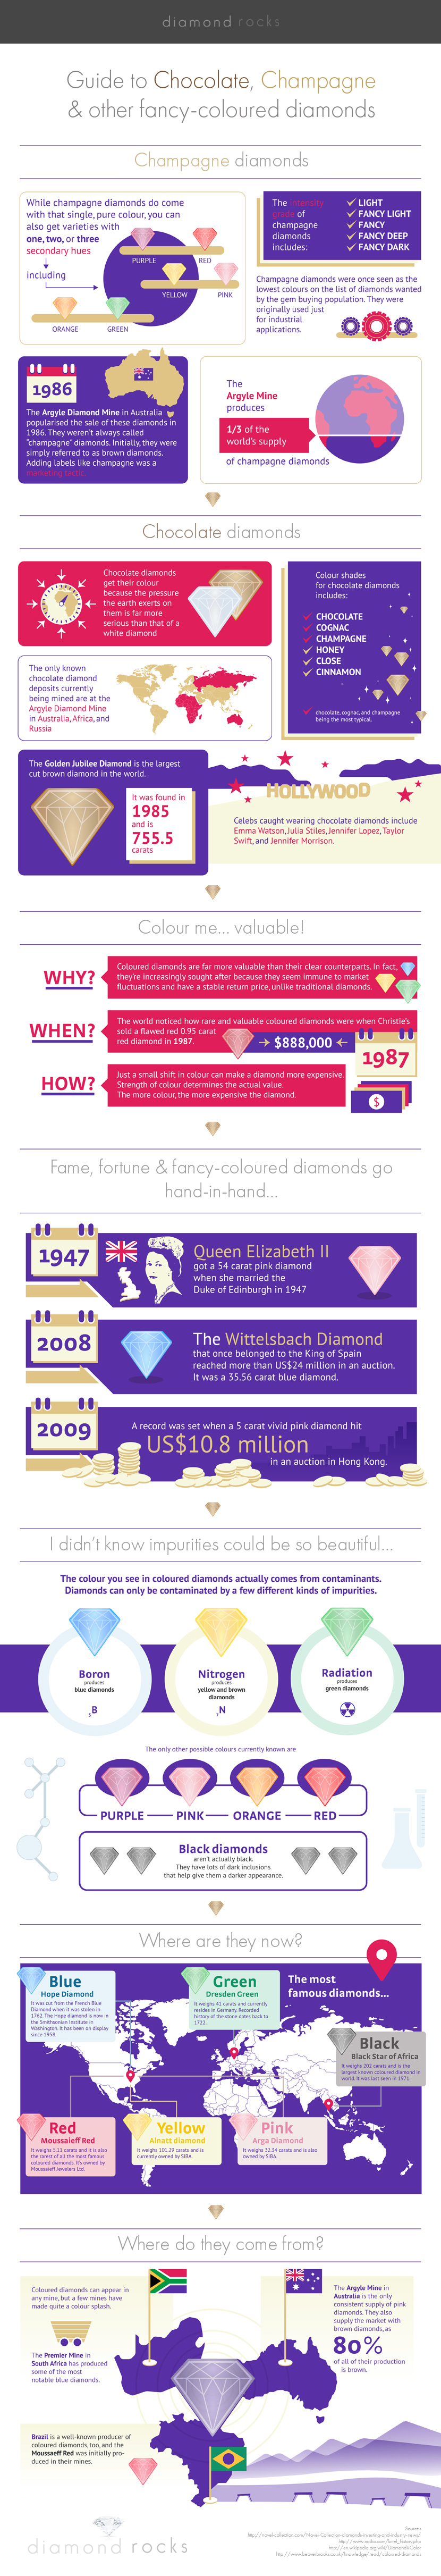 Diamond Rock Champagne and chocolates infographic